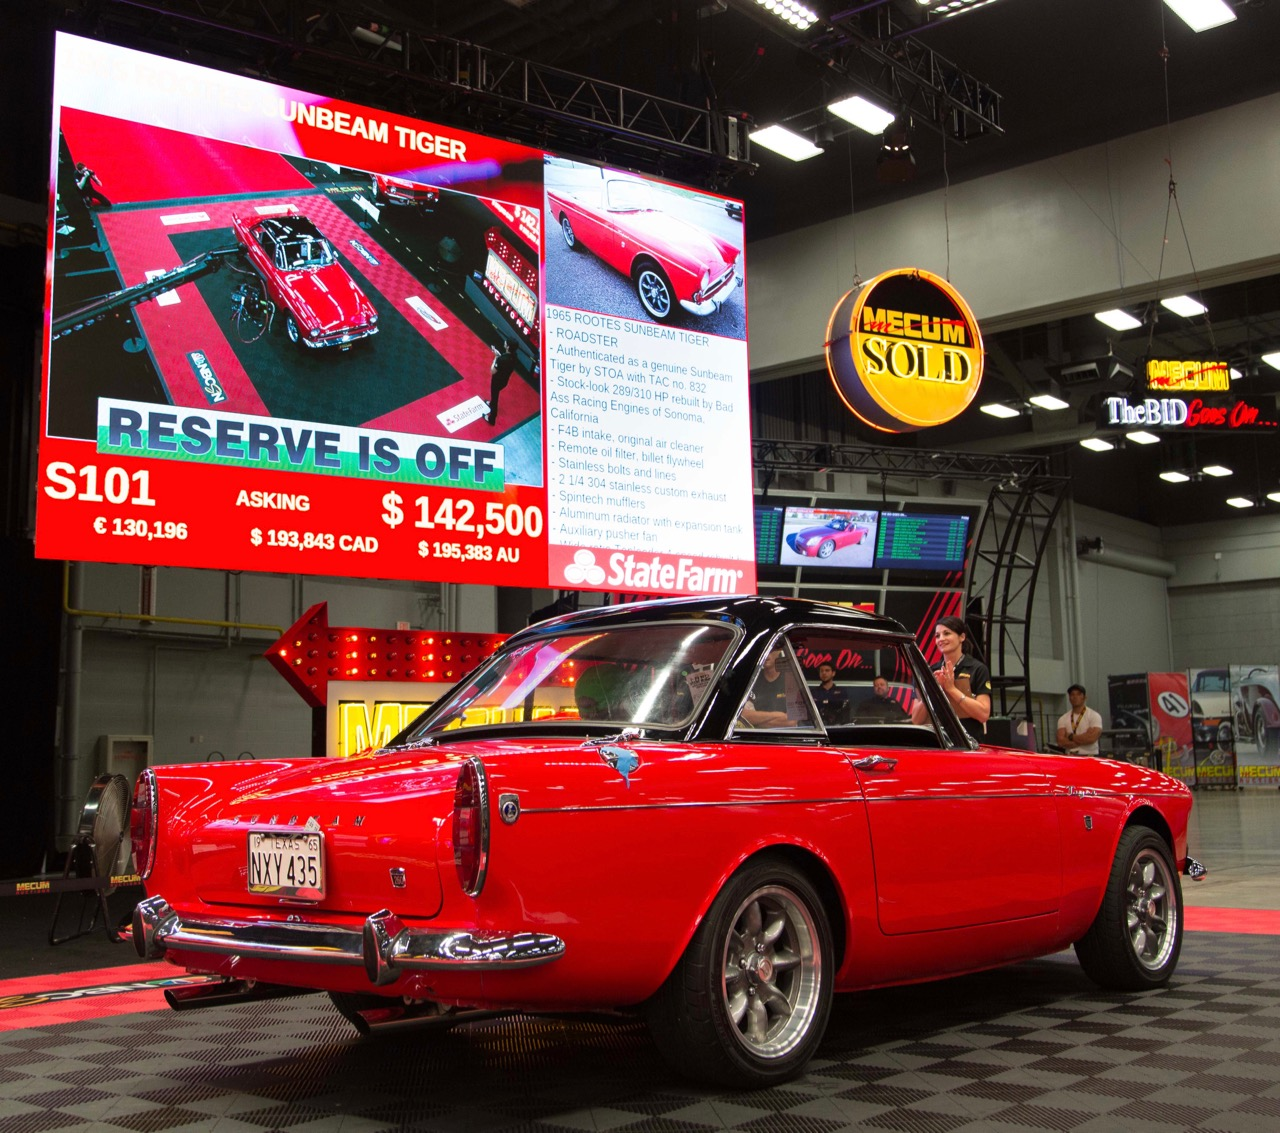 Sunbeam Tiger sells for $142,500 to lead traditional classics